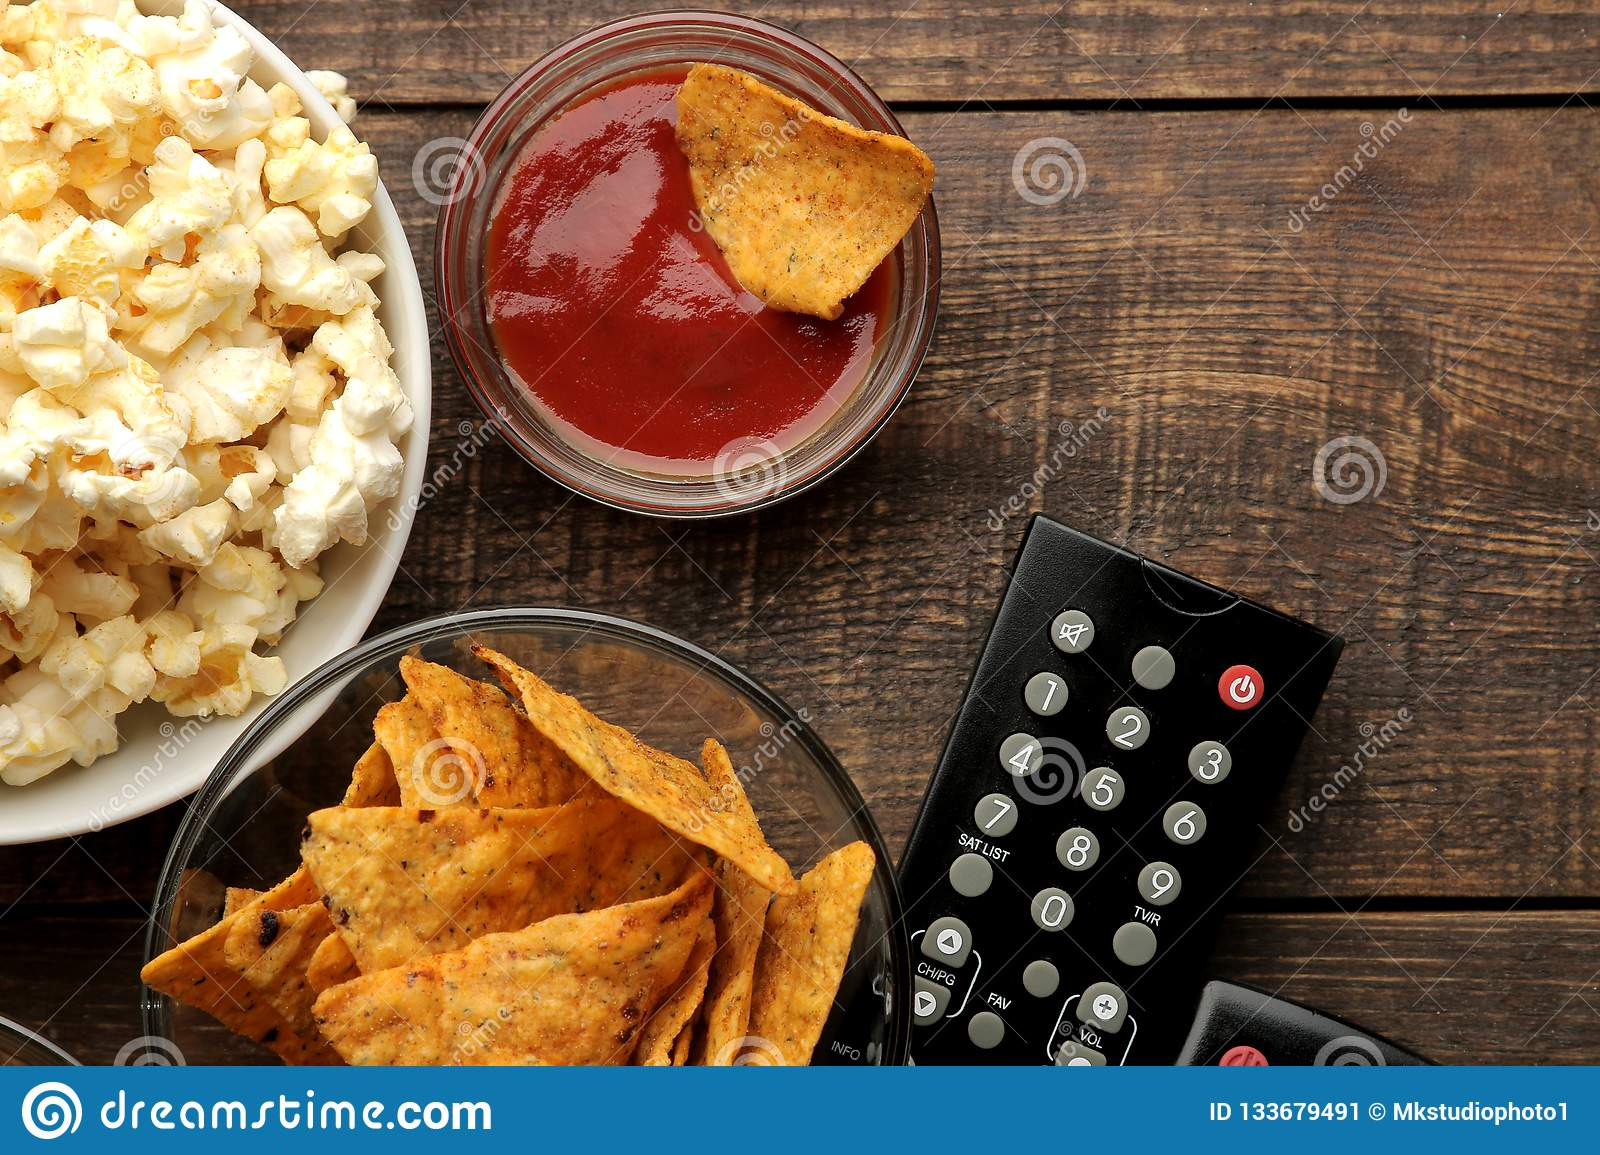 Popcorn and various snacks, TV remote on a brown wooden background. concept of watching movies at home. view from above